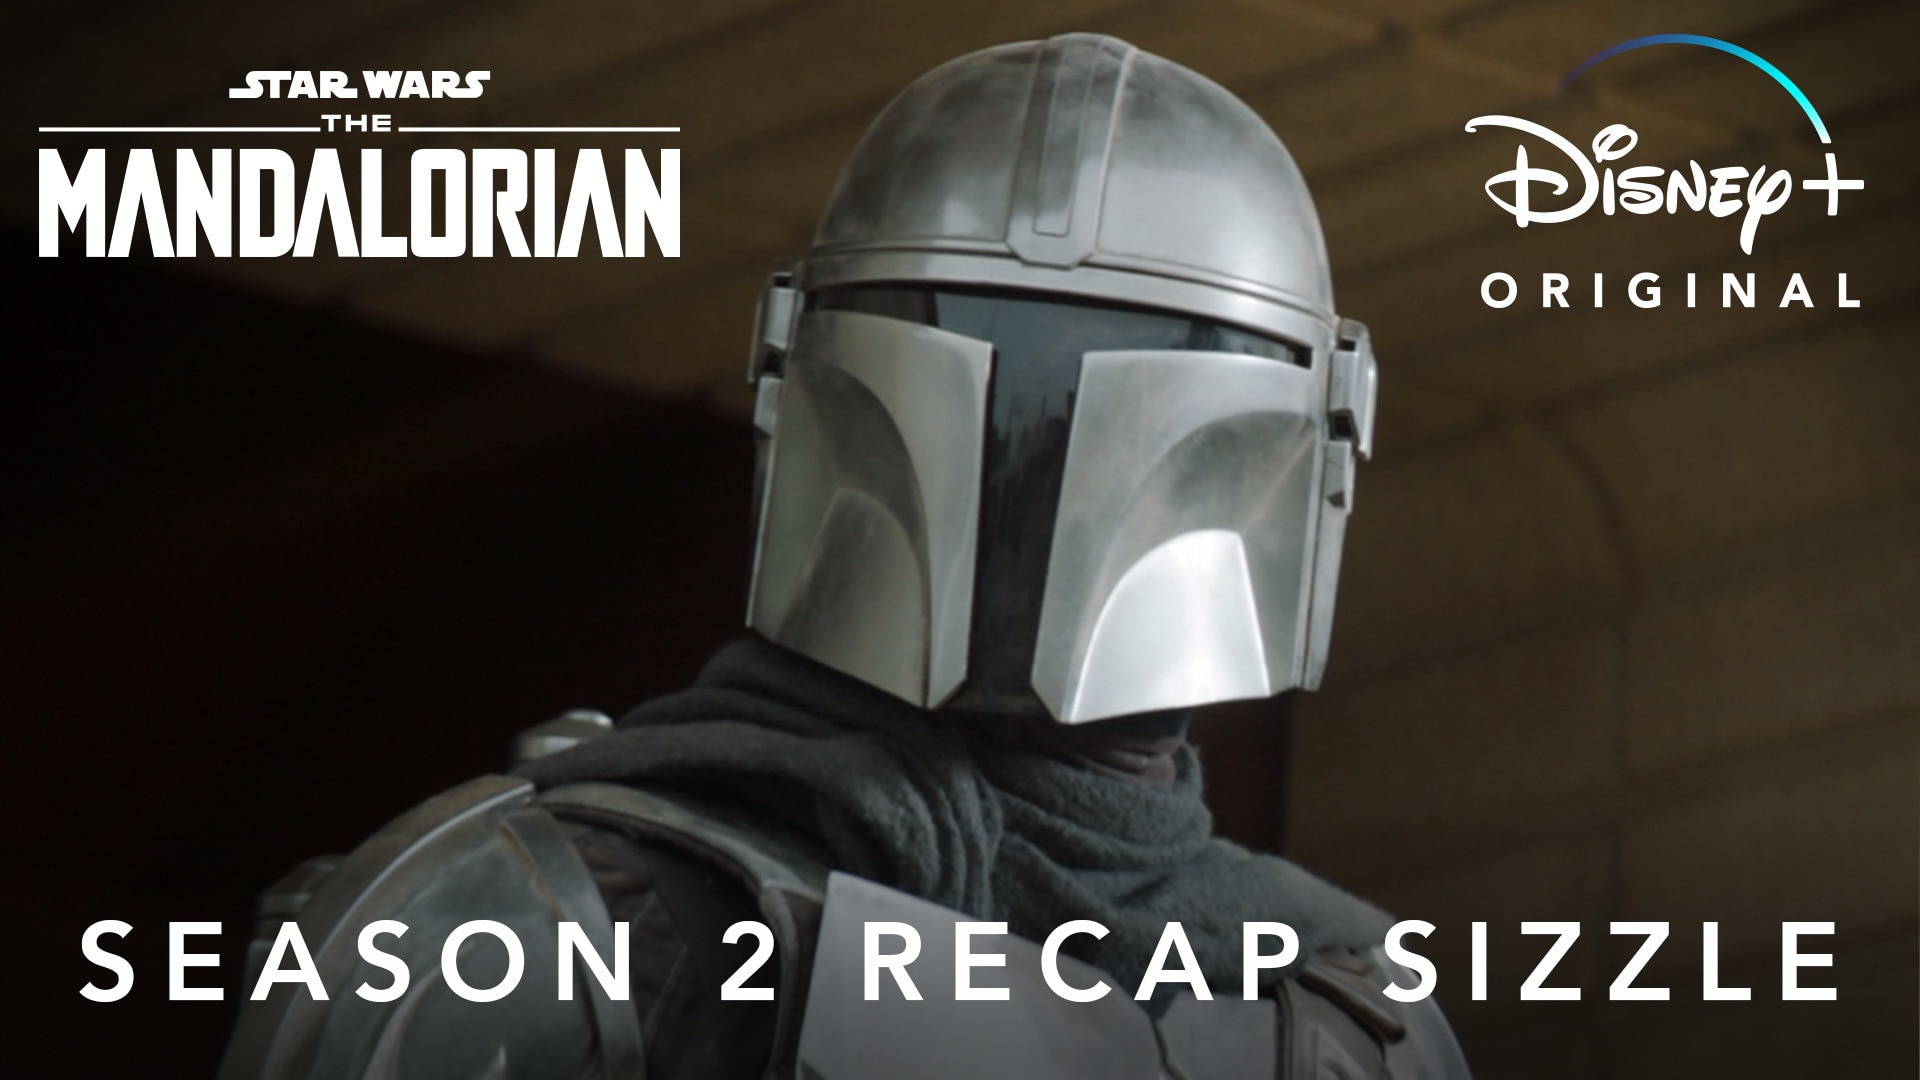 Season 2 Recap Sizzle - The Mandalorian